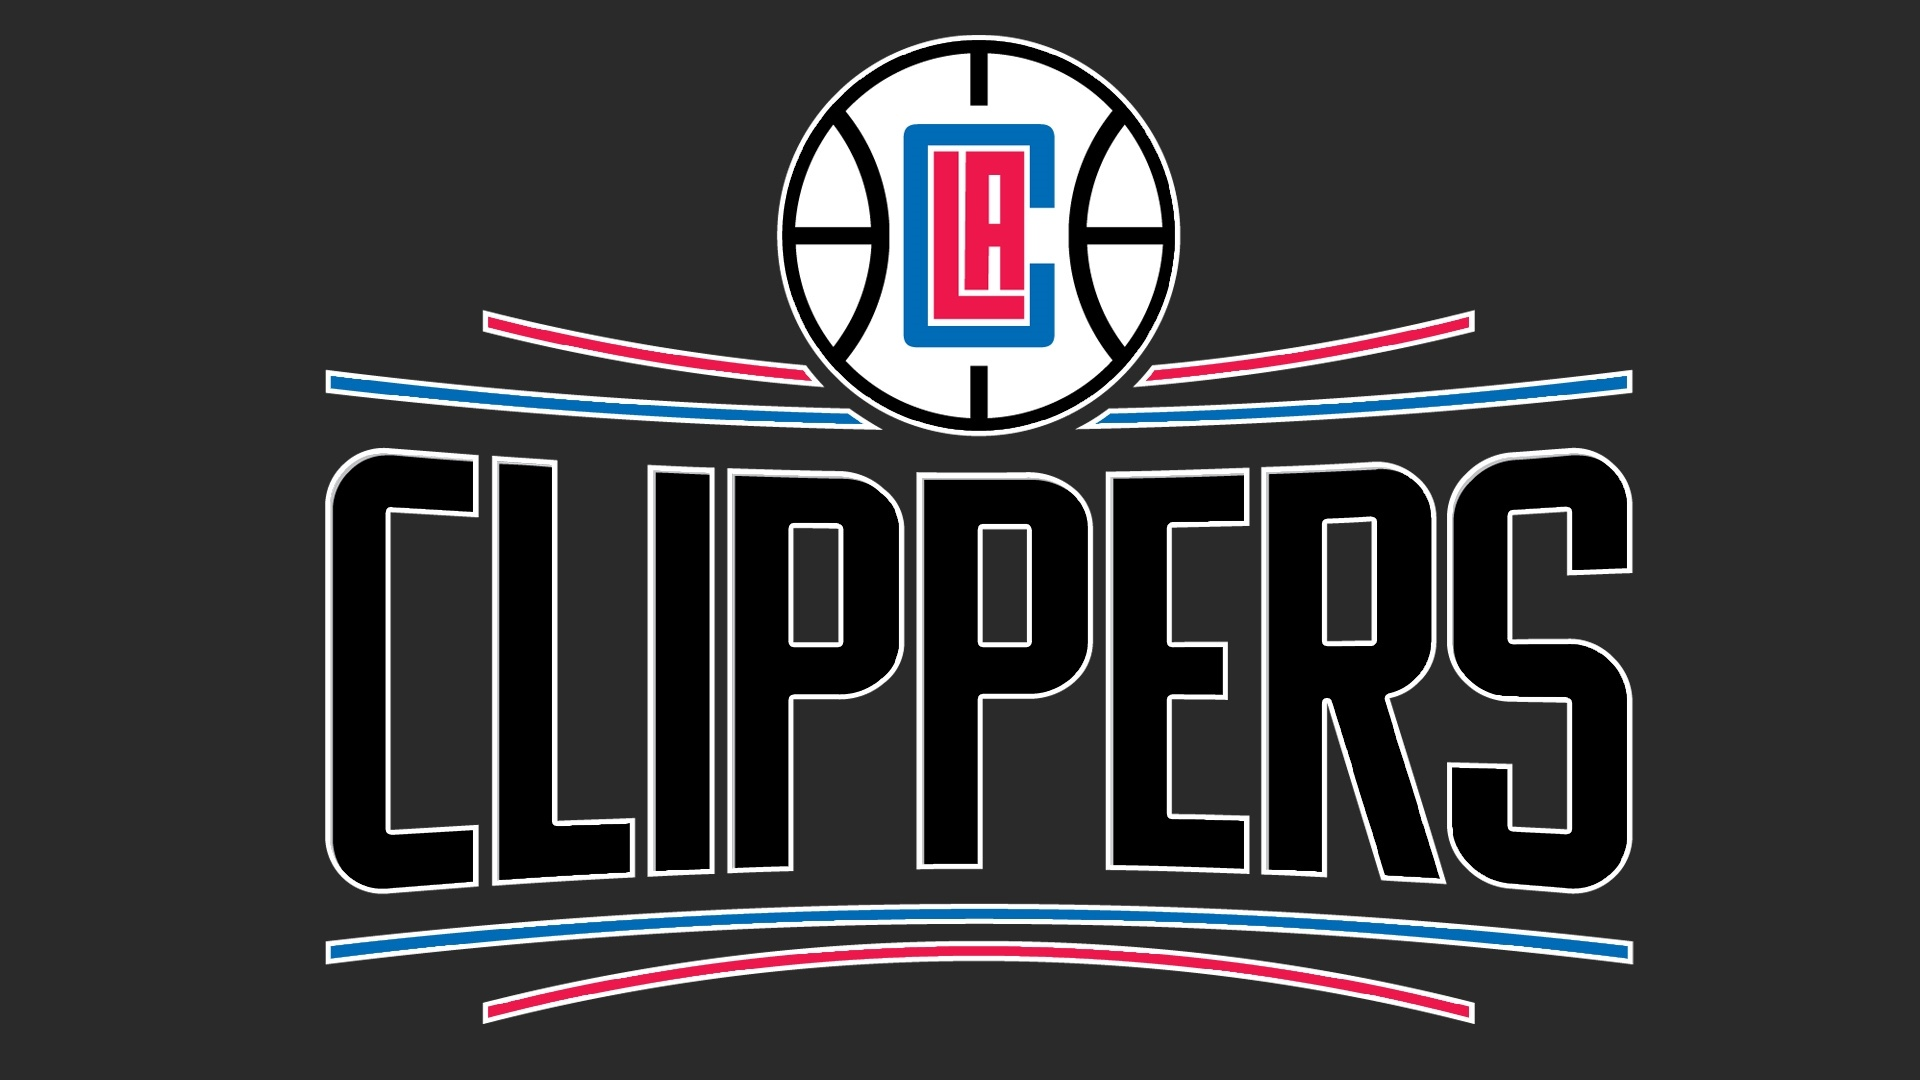 Los Angeles Clippers a wallpaper